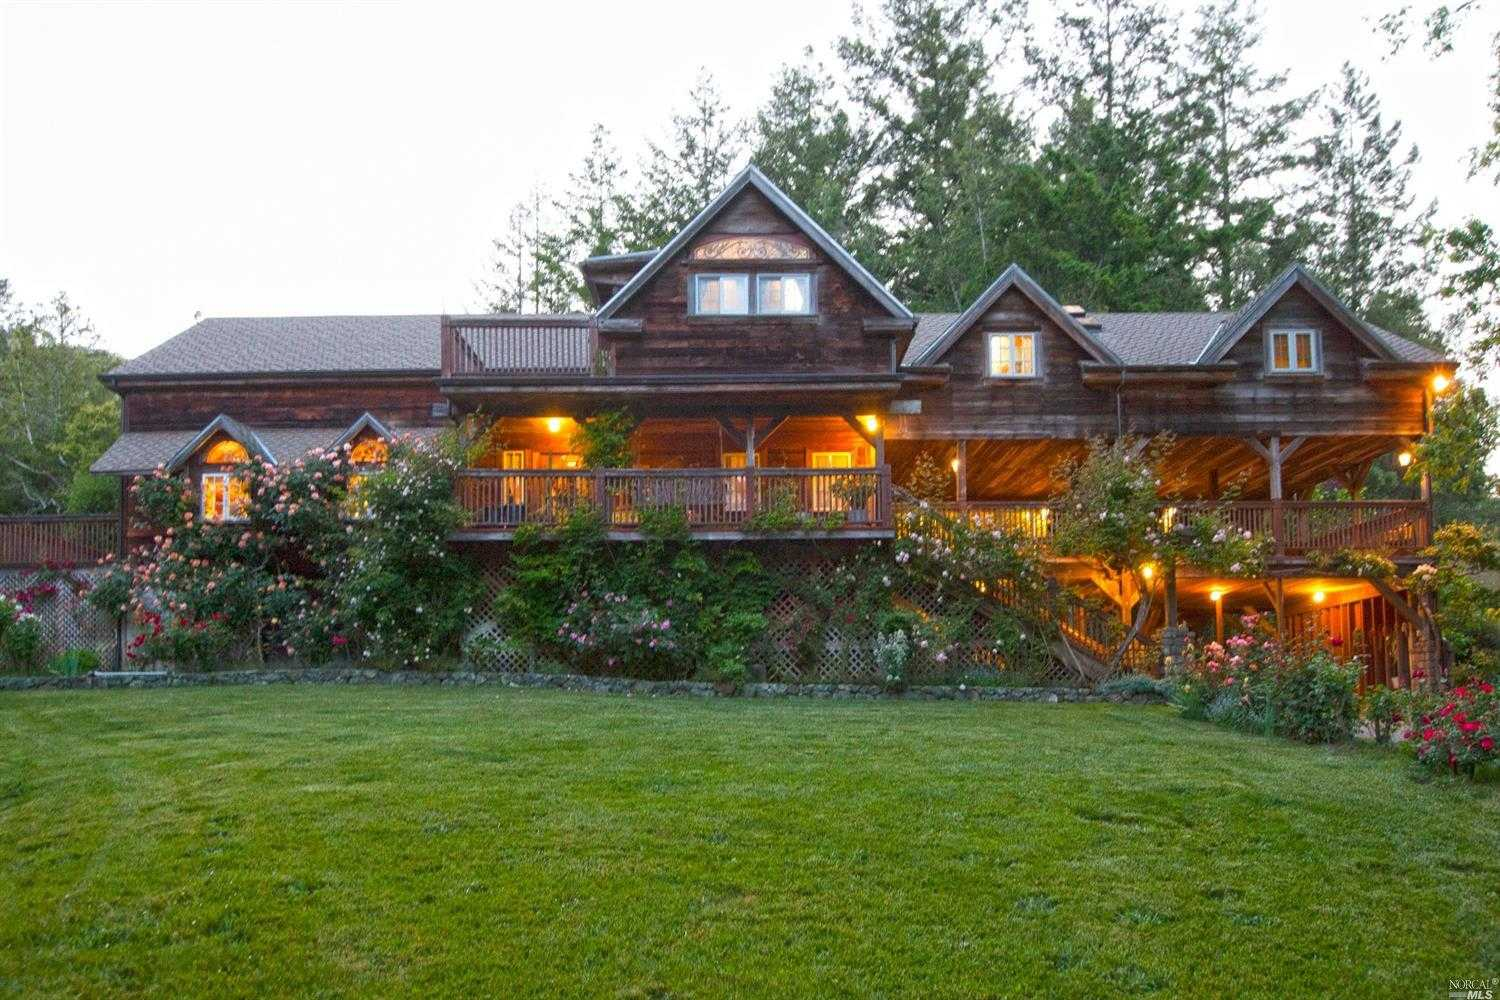 $5,250,000 - 3Br/2Ba -  for Sale in Nicasio